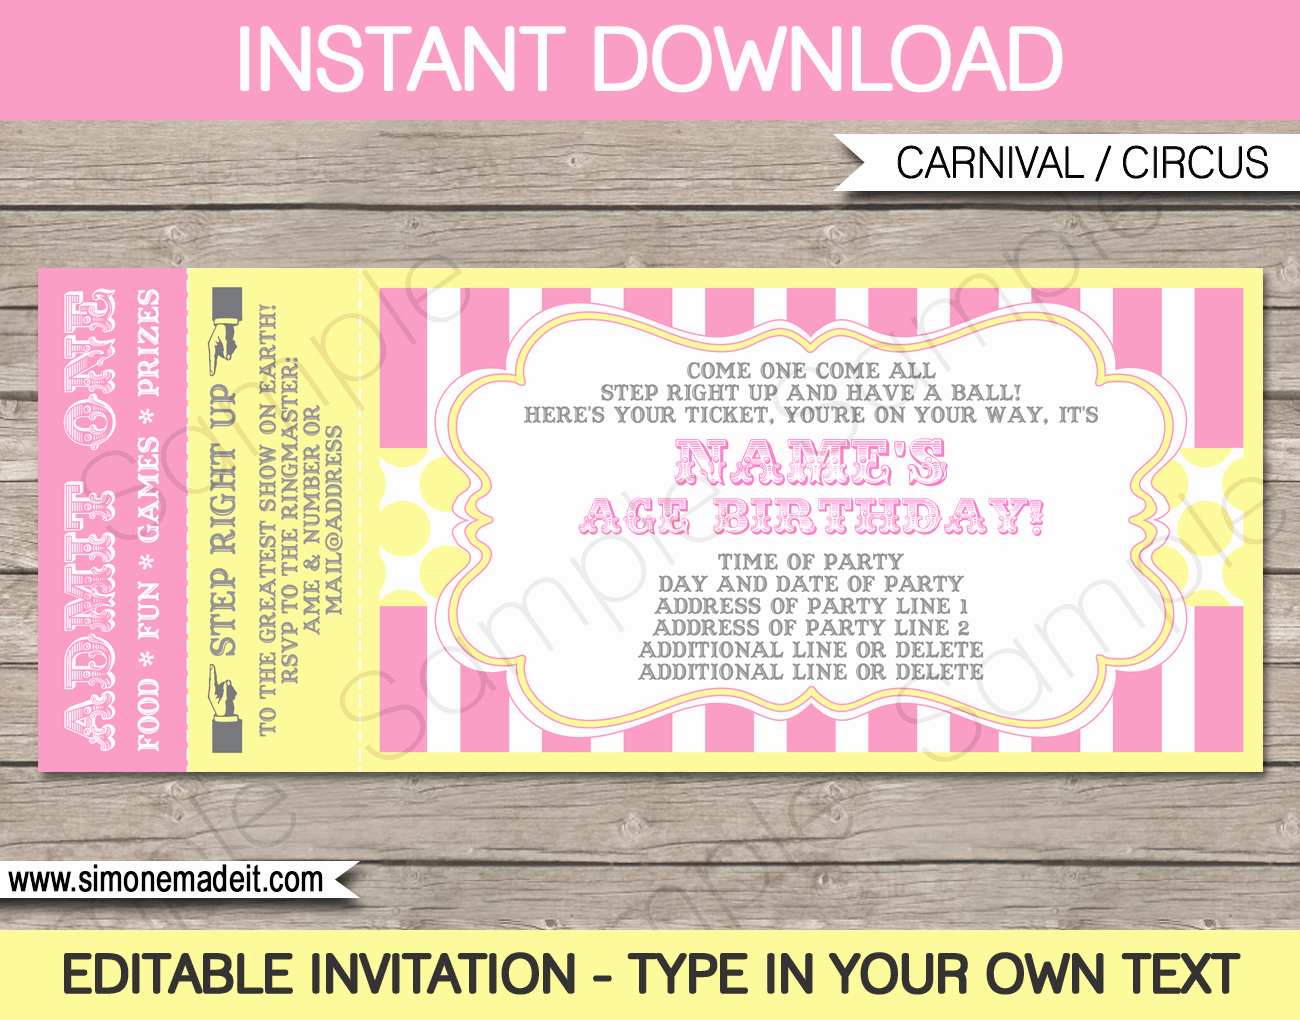 Carnival Invitation Templates Inspirational Carnival Birthday Ticket Invitation Template